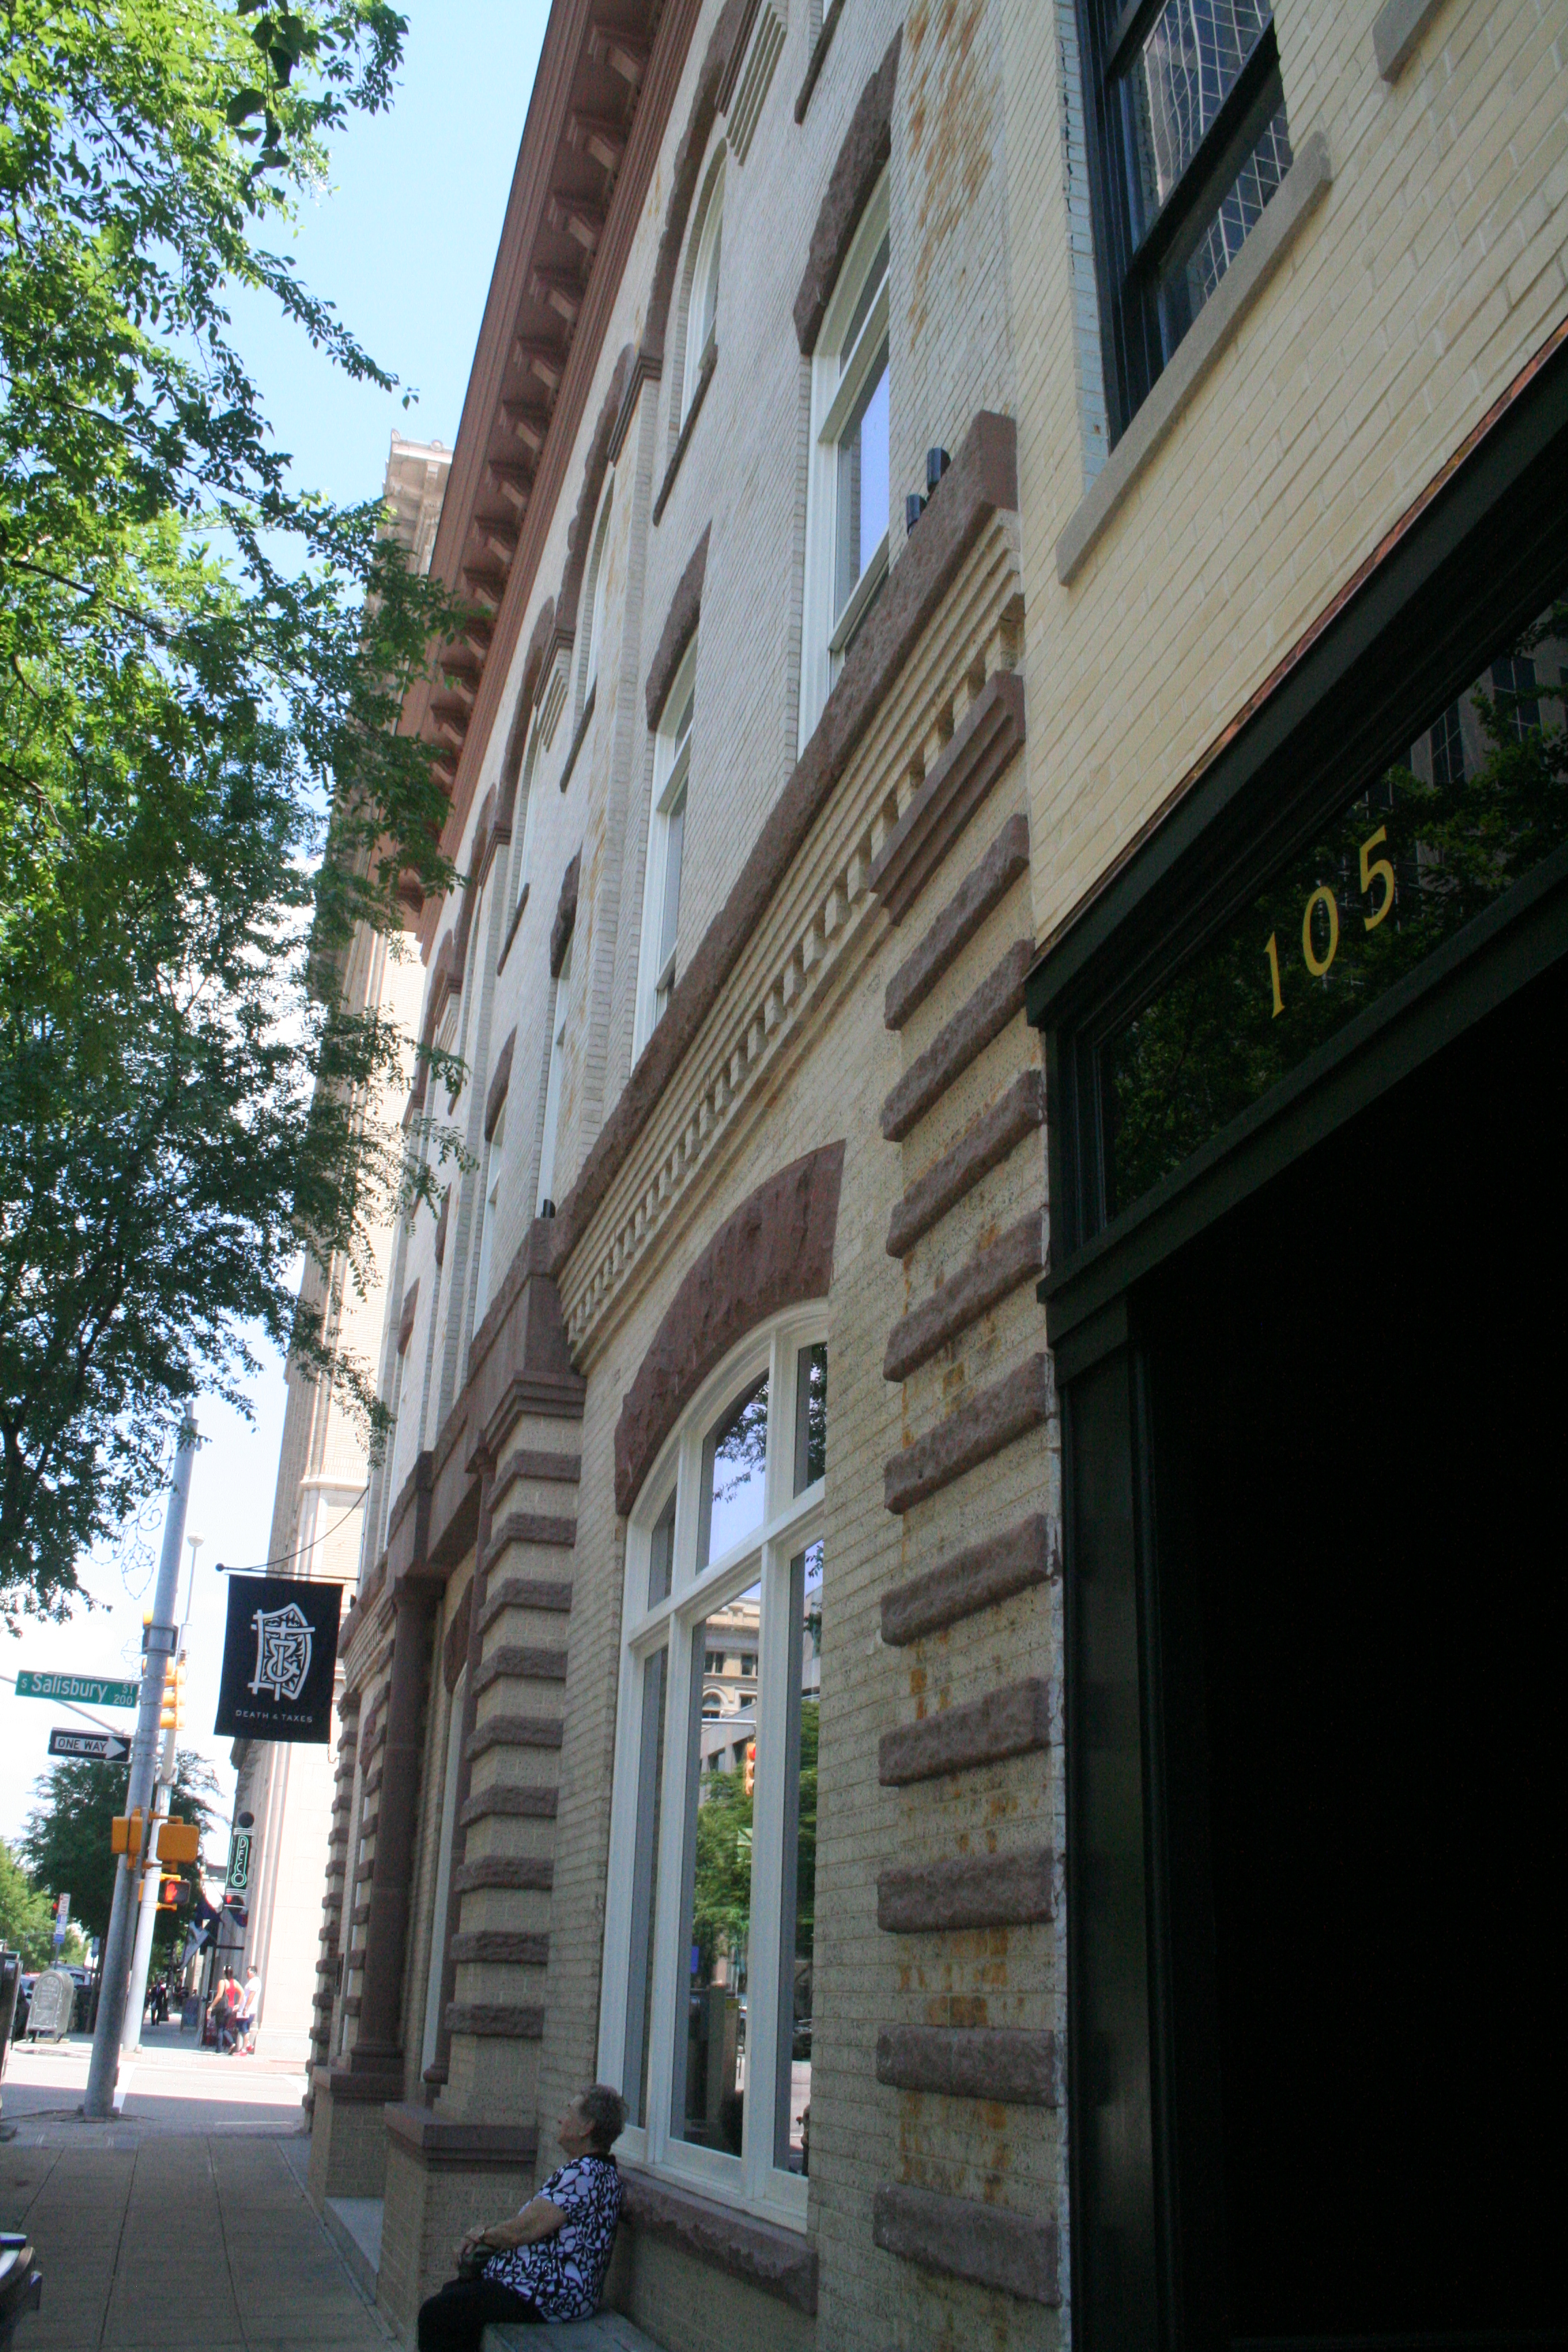 Death and Taxes from Hargett Street